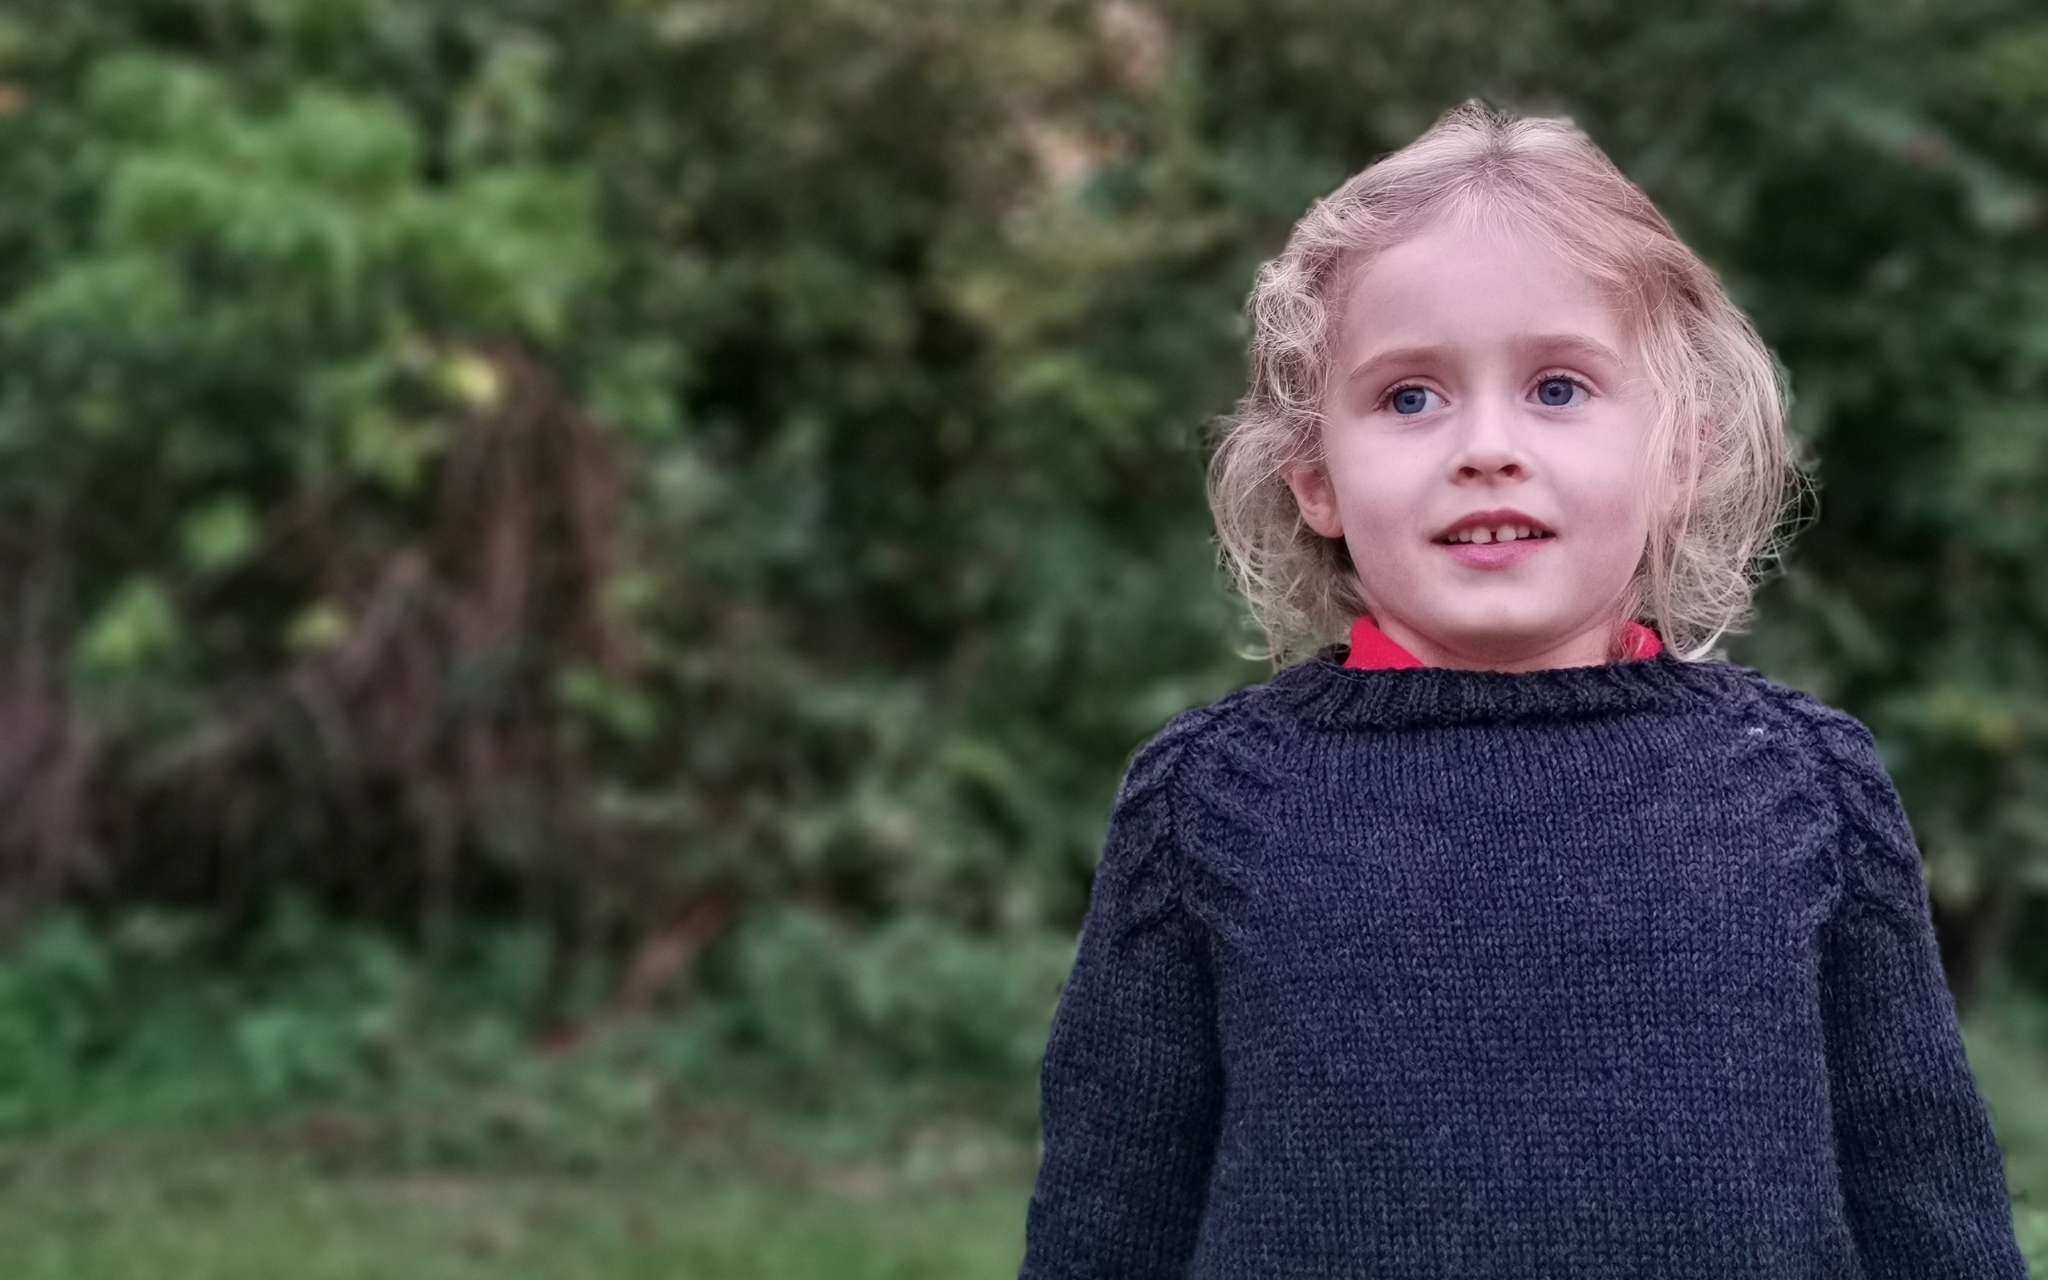 A young child with wavy blond hair wears a black sweater with cabled detailing along the raglan shaping. They are looking straight ahead and standing in a garden.